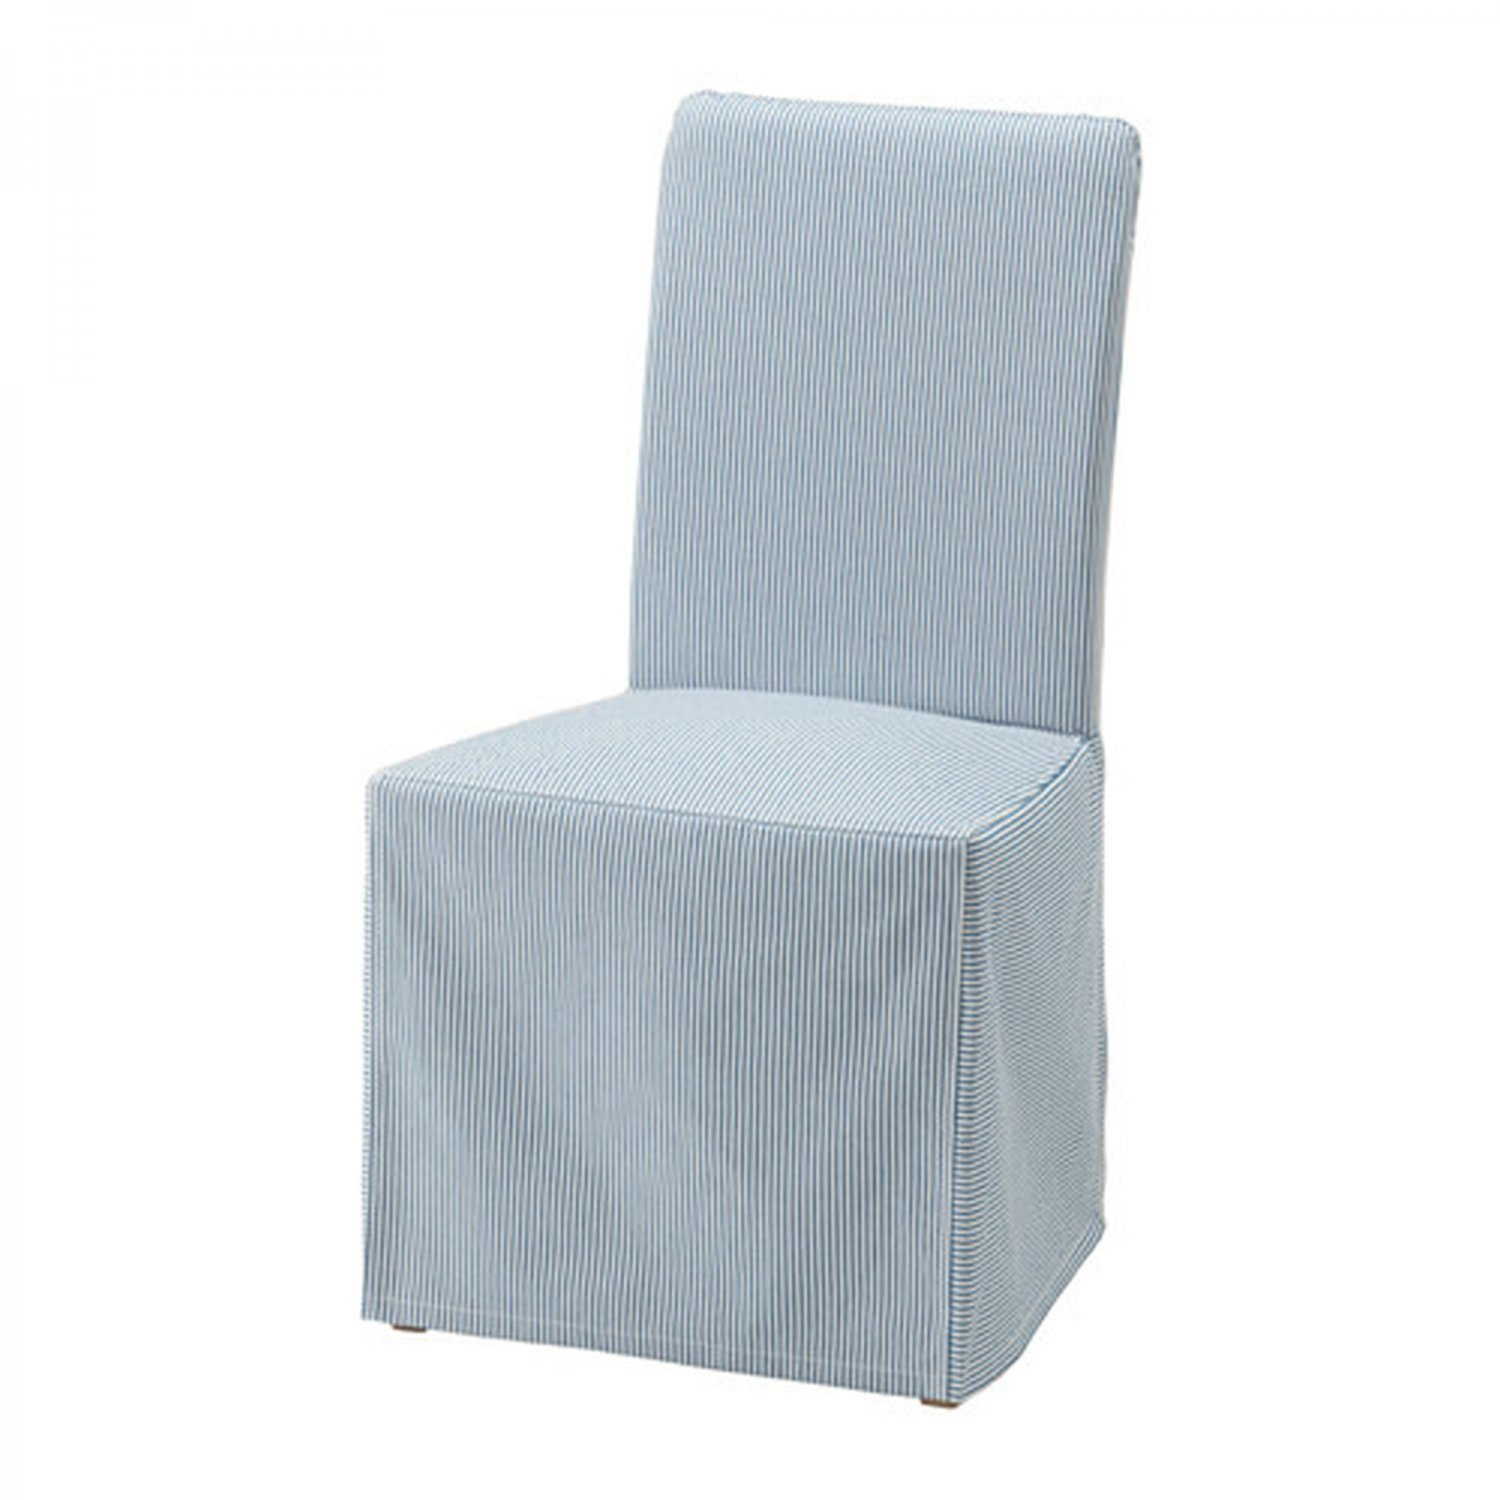 Picture of: Ikea Henriksdal Chair Slipcover Cover Skirted Remvallen Blue White Stripes Long